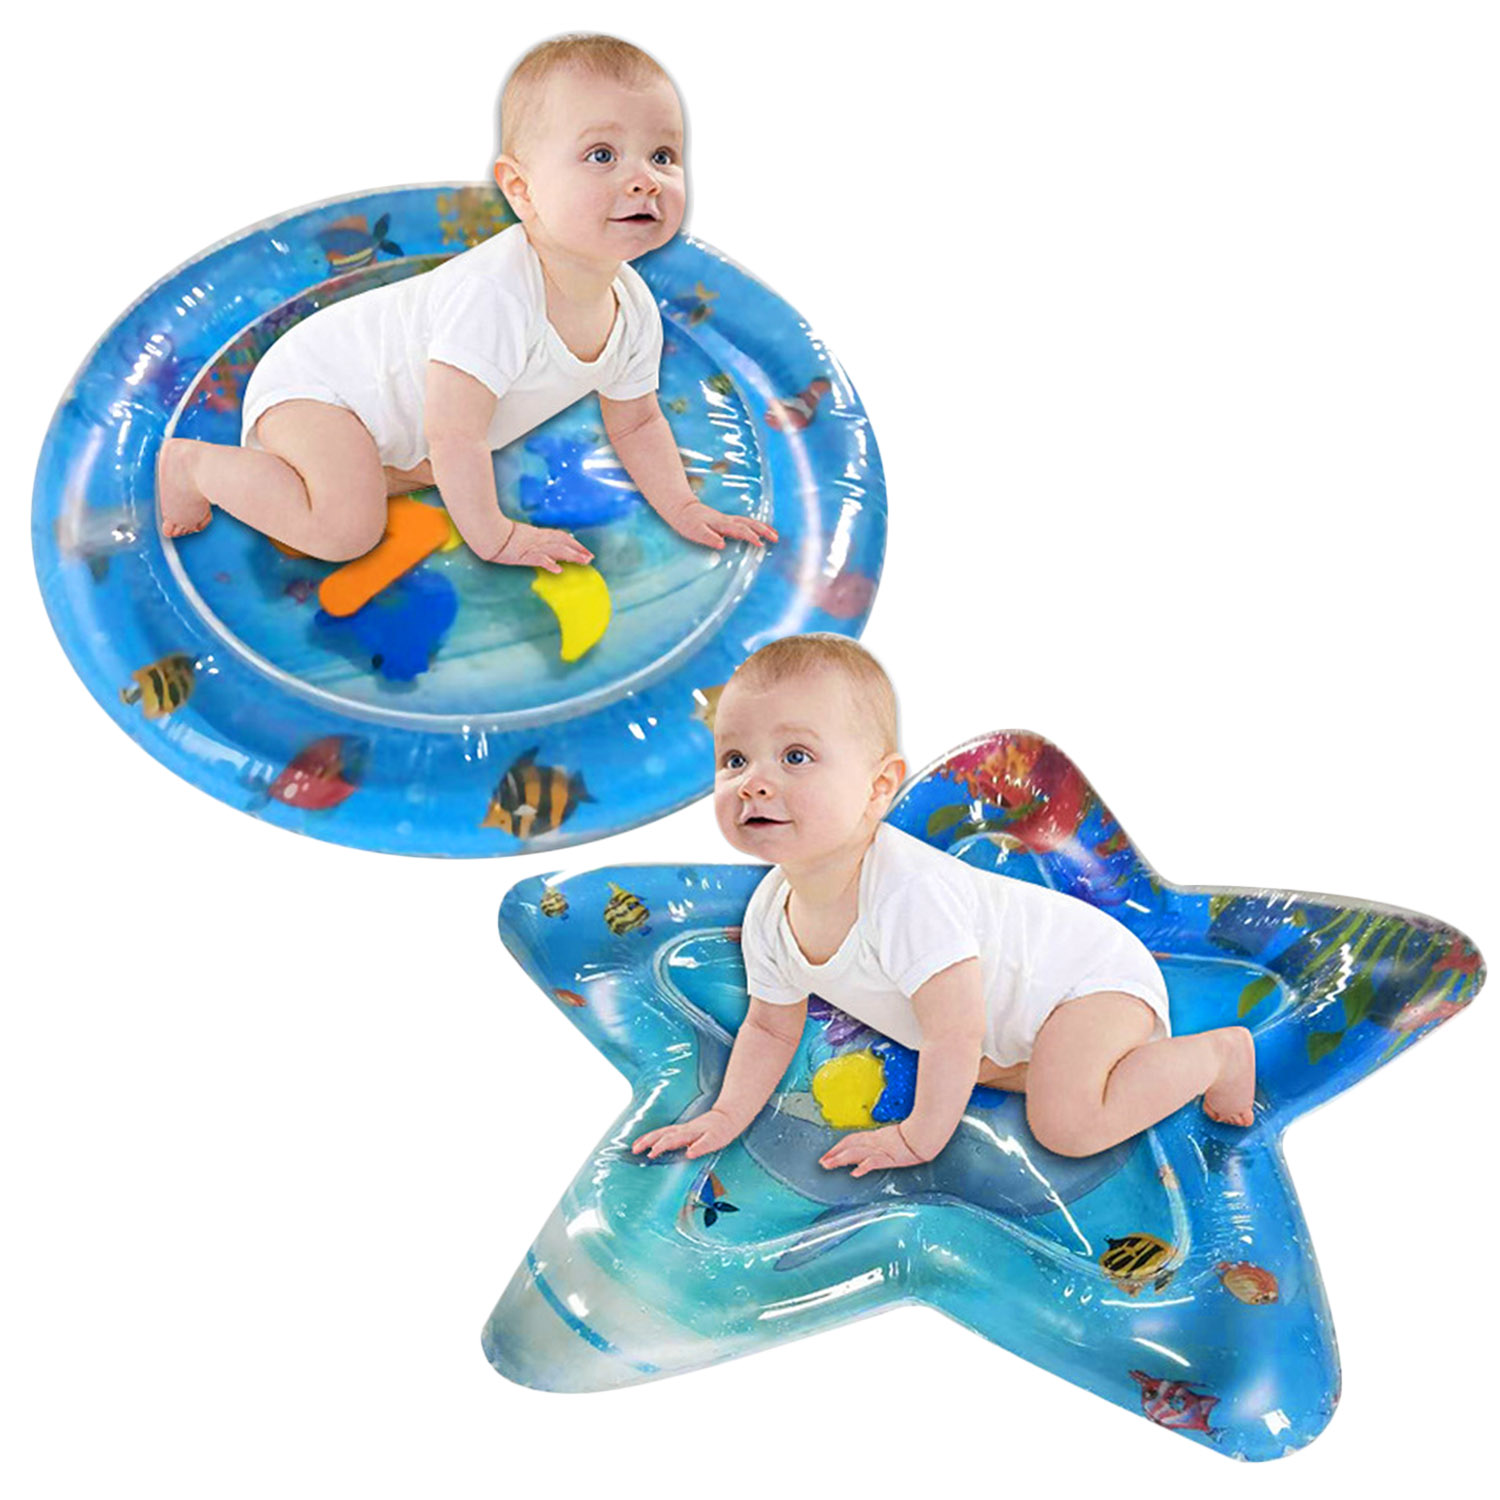 Baby Water Toy Inflatable Water Play Mat Tummy Time Activity Play Center Pad For Kid Sensory Stimulation Motor Skills Funny Toy